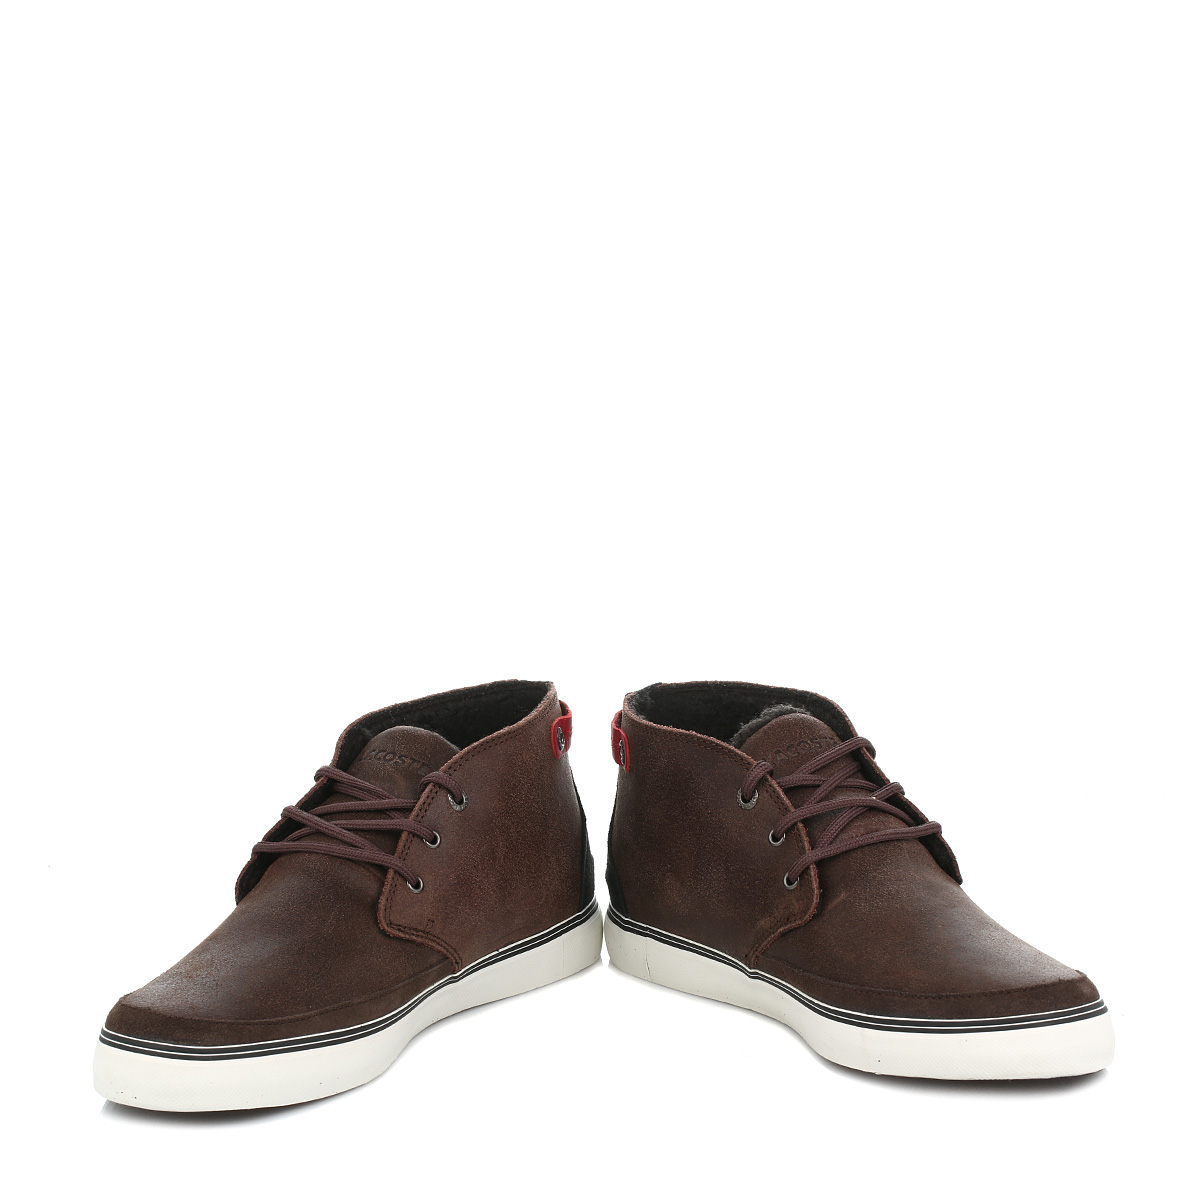 Lacoste Shoes Brown Suede